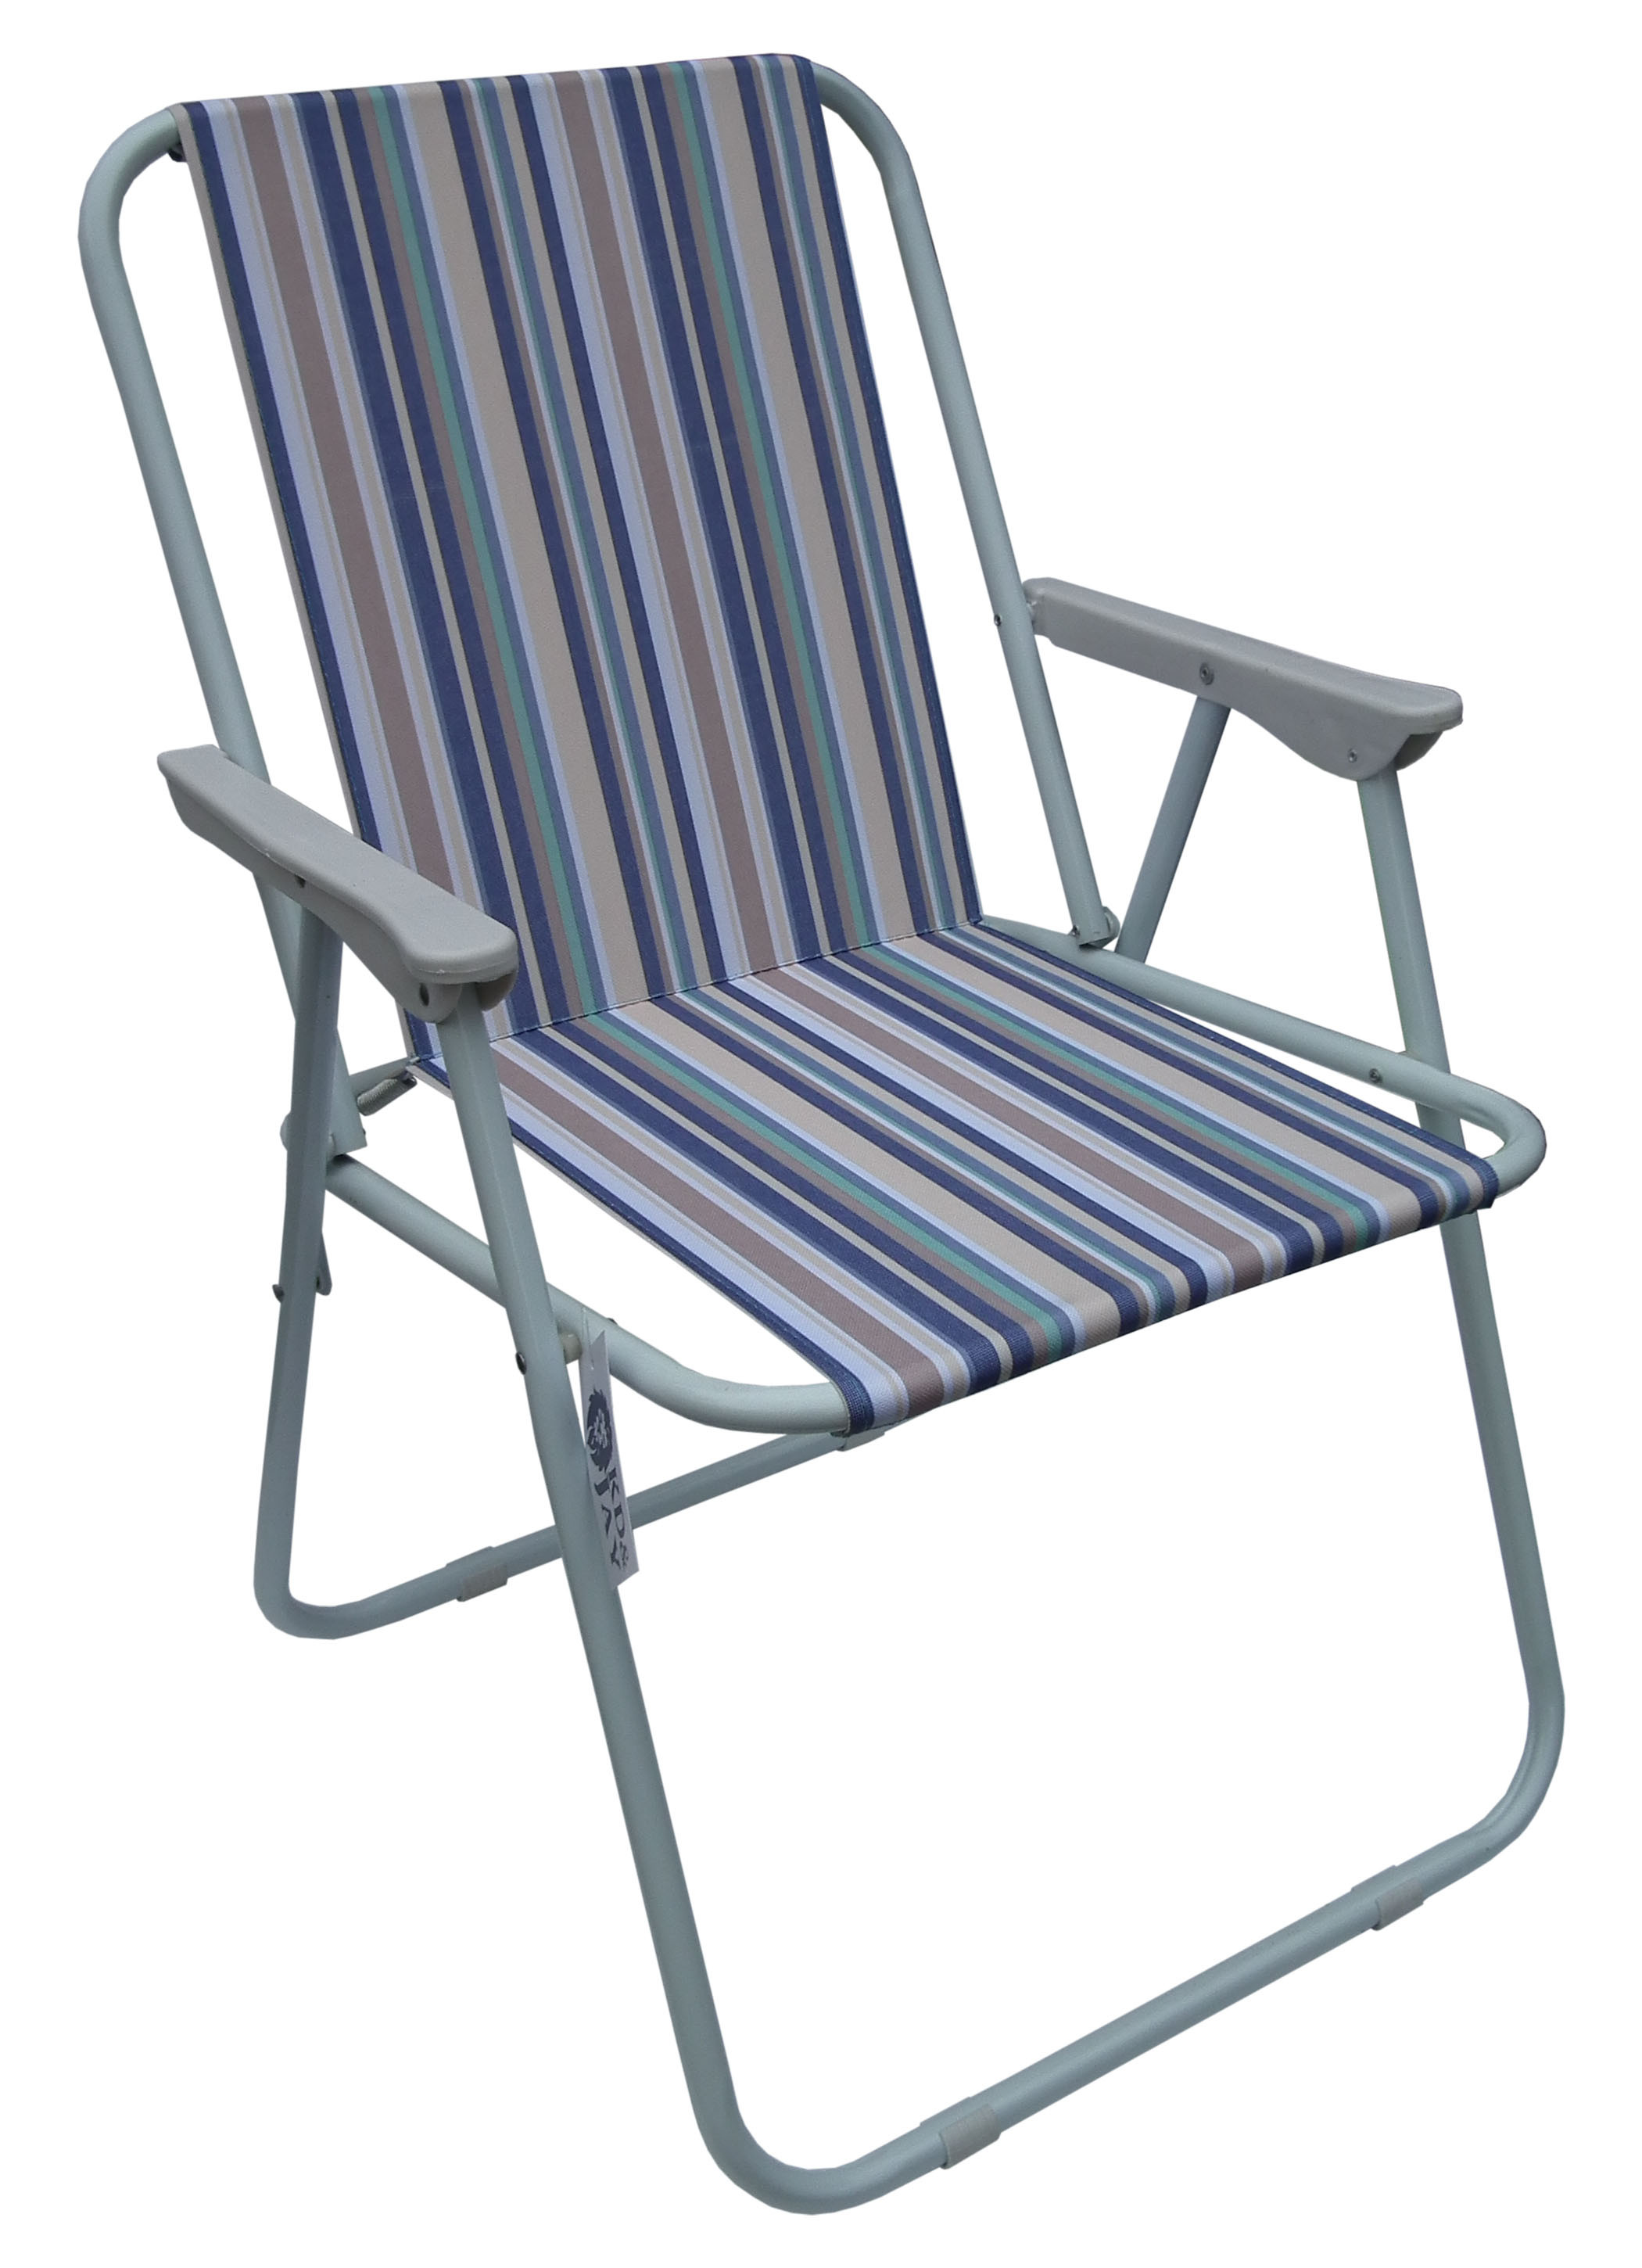 Best ideas about Outdoor Chairs Walmart . Save or Pin Furniture Appealing Design Walmart Beach Chairs For Now.